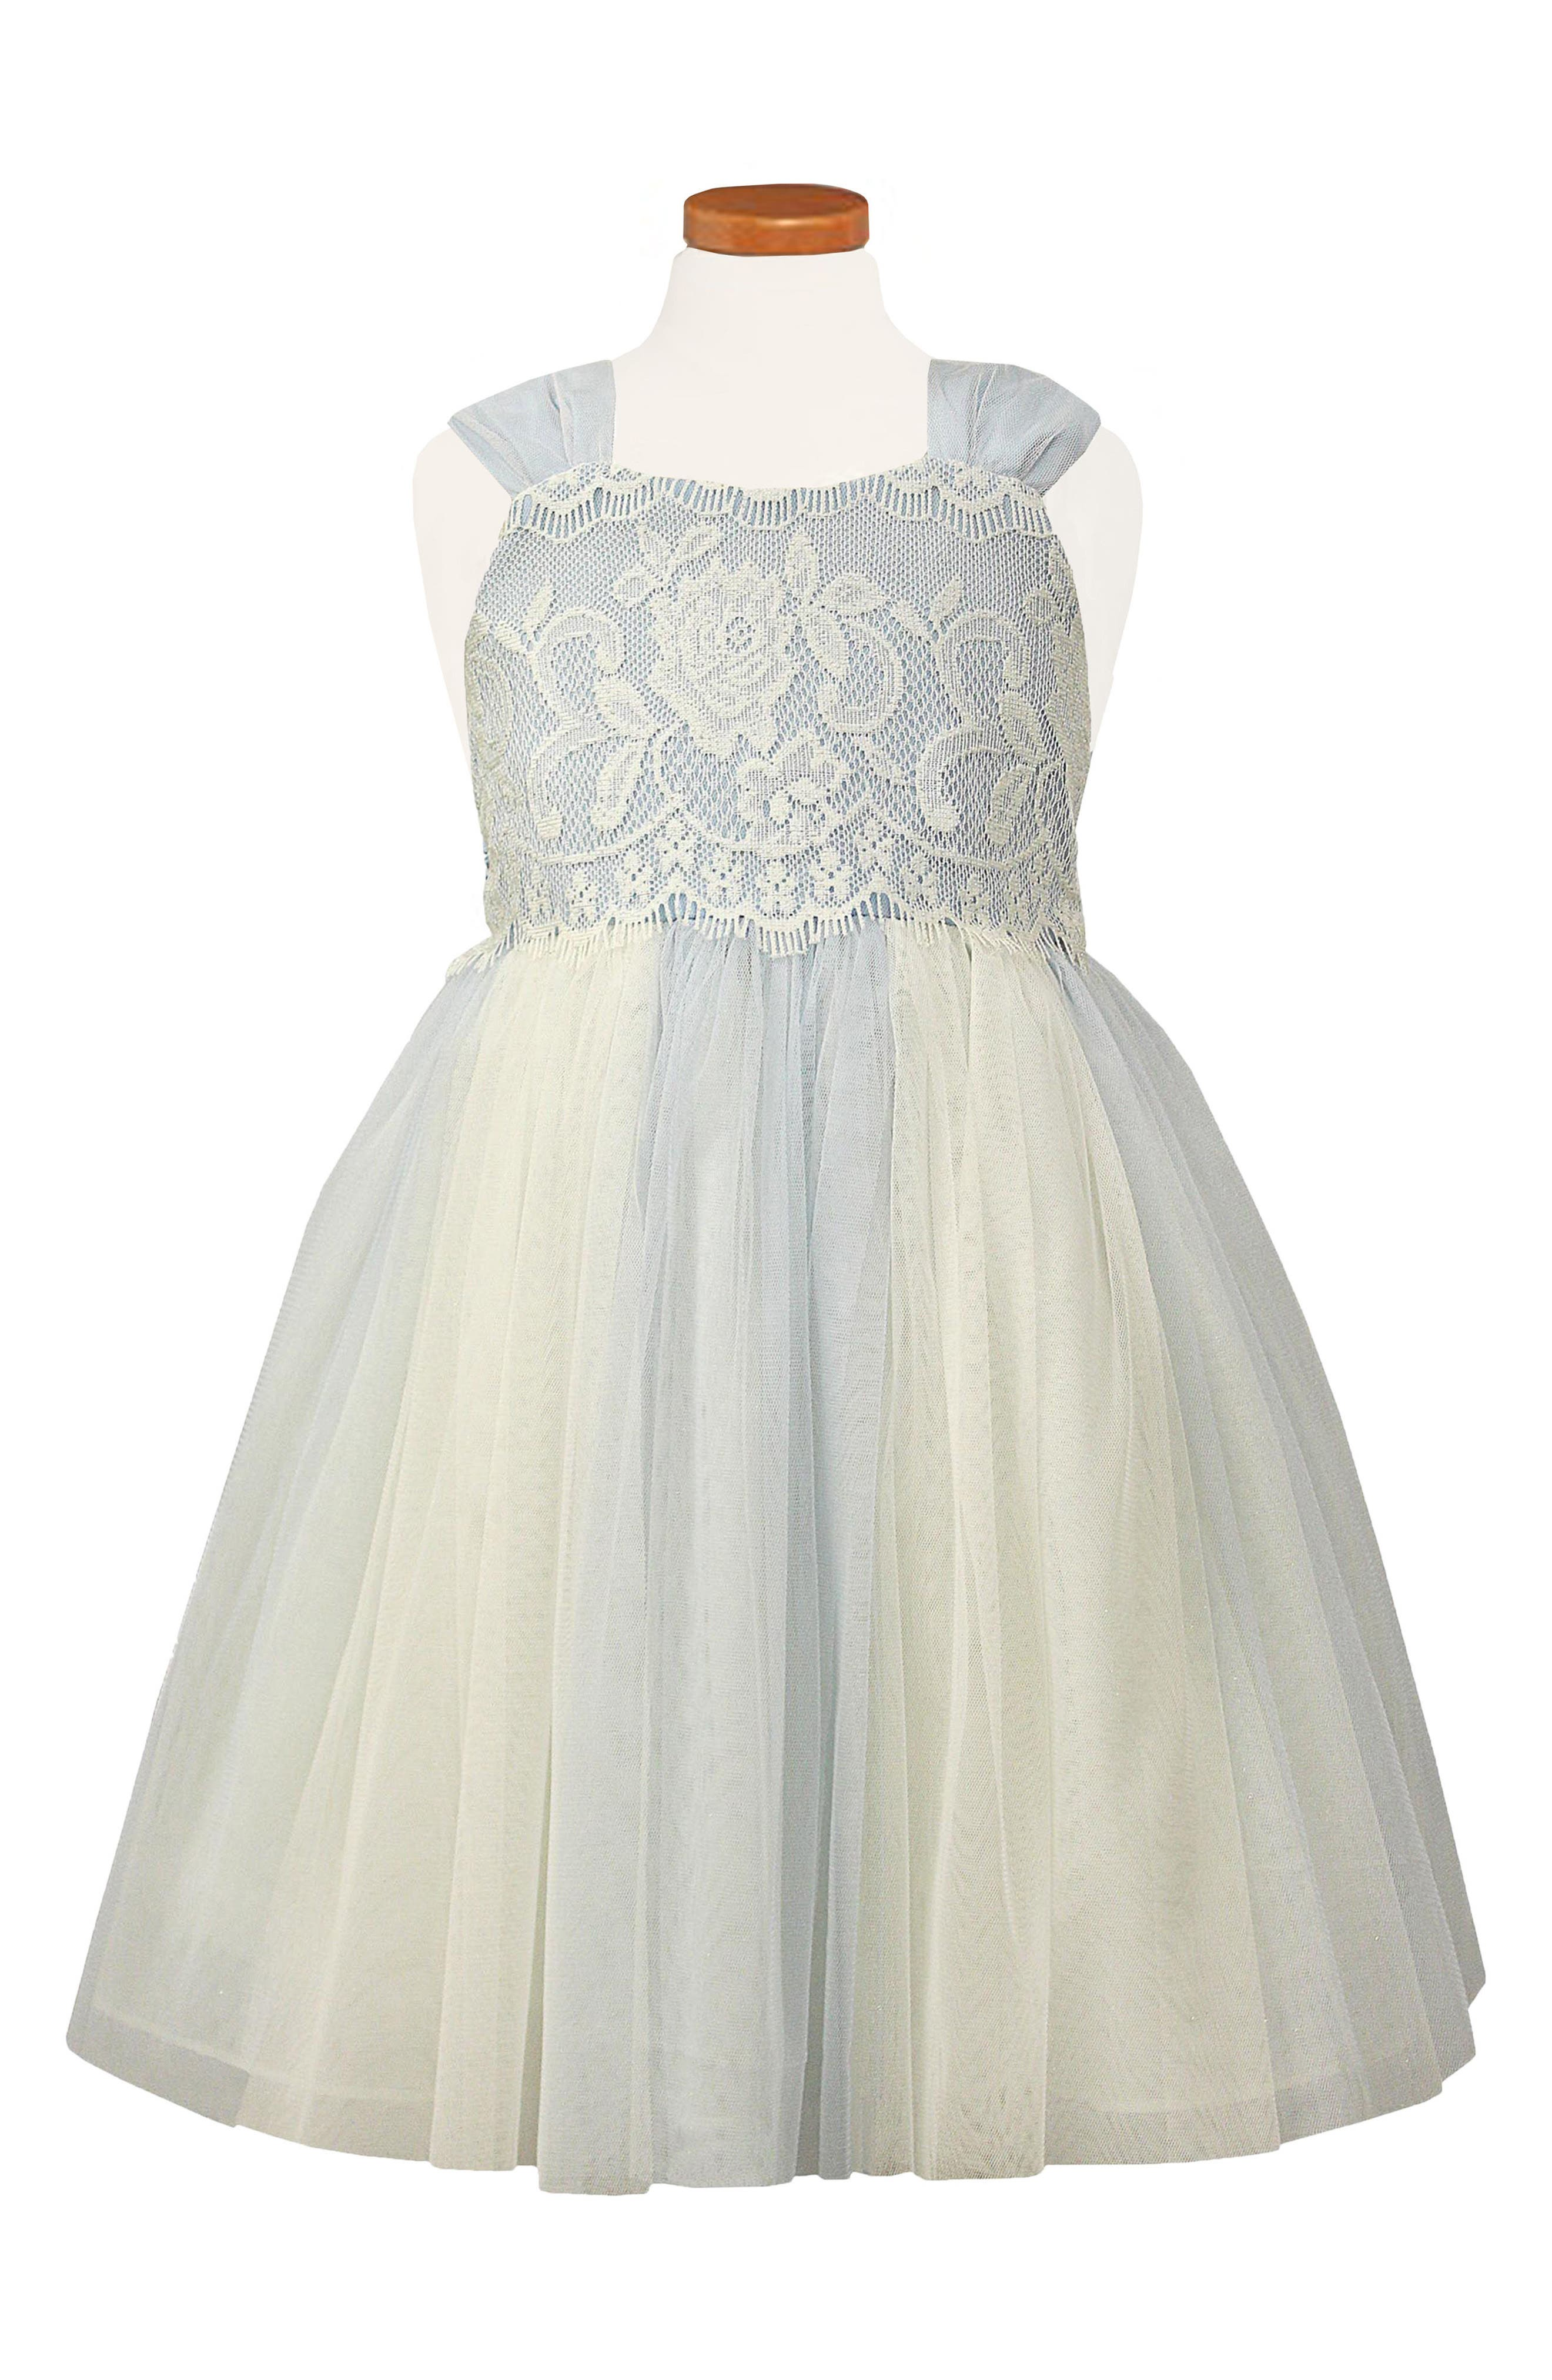 Lace & Tulle Fit & Flare Dress,                             Main thumbnail 1, color,                             420